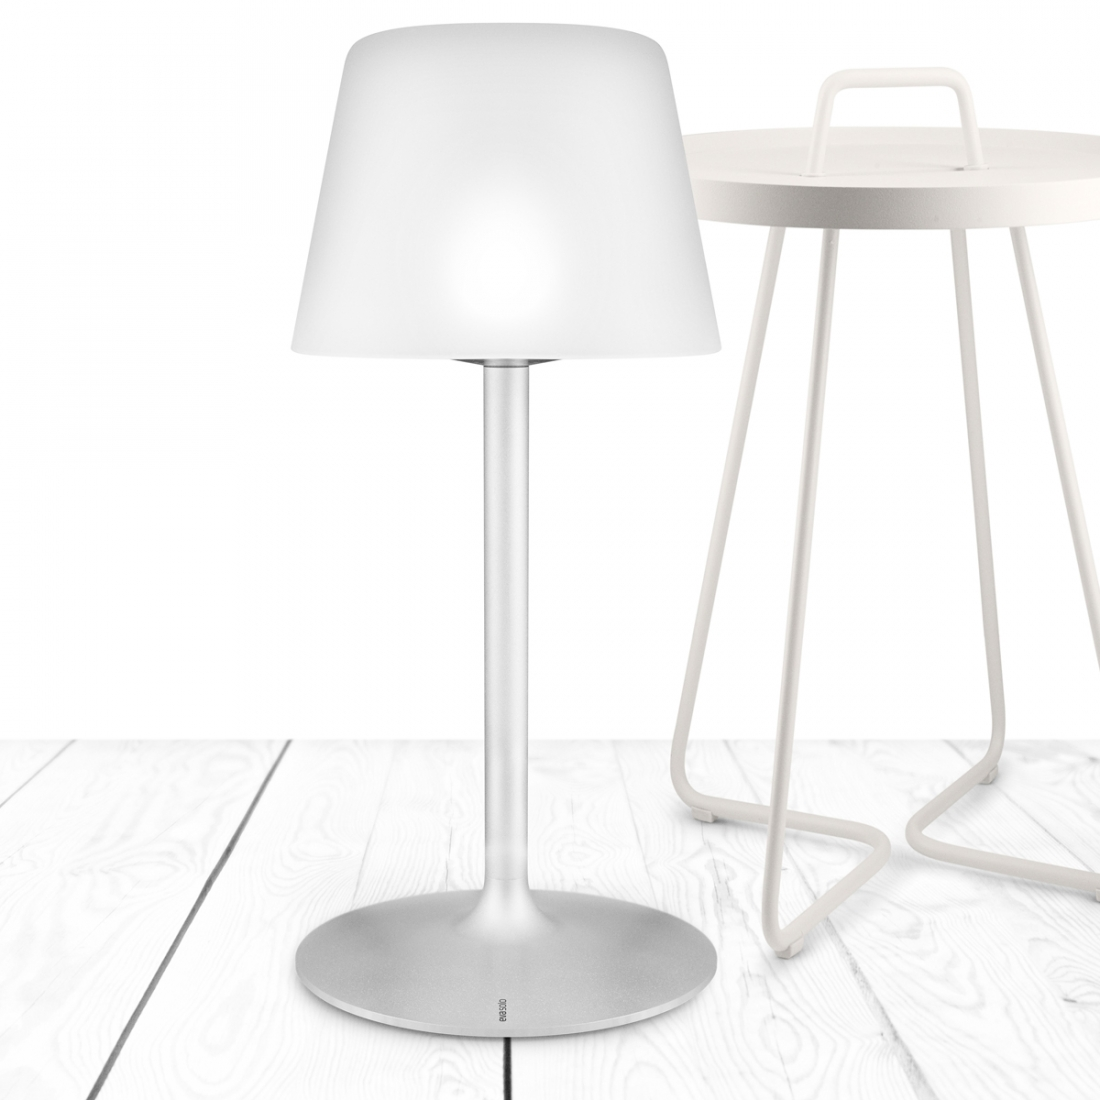 Lampe de table solaire SUNLIGHT par Eva Solo